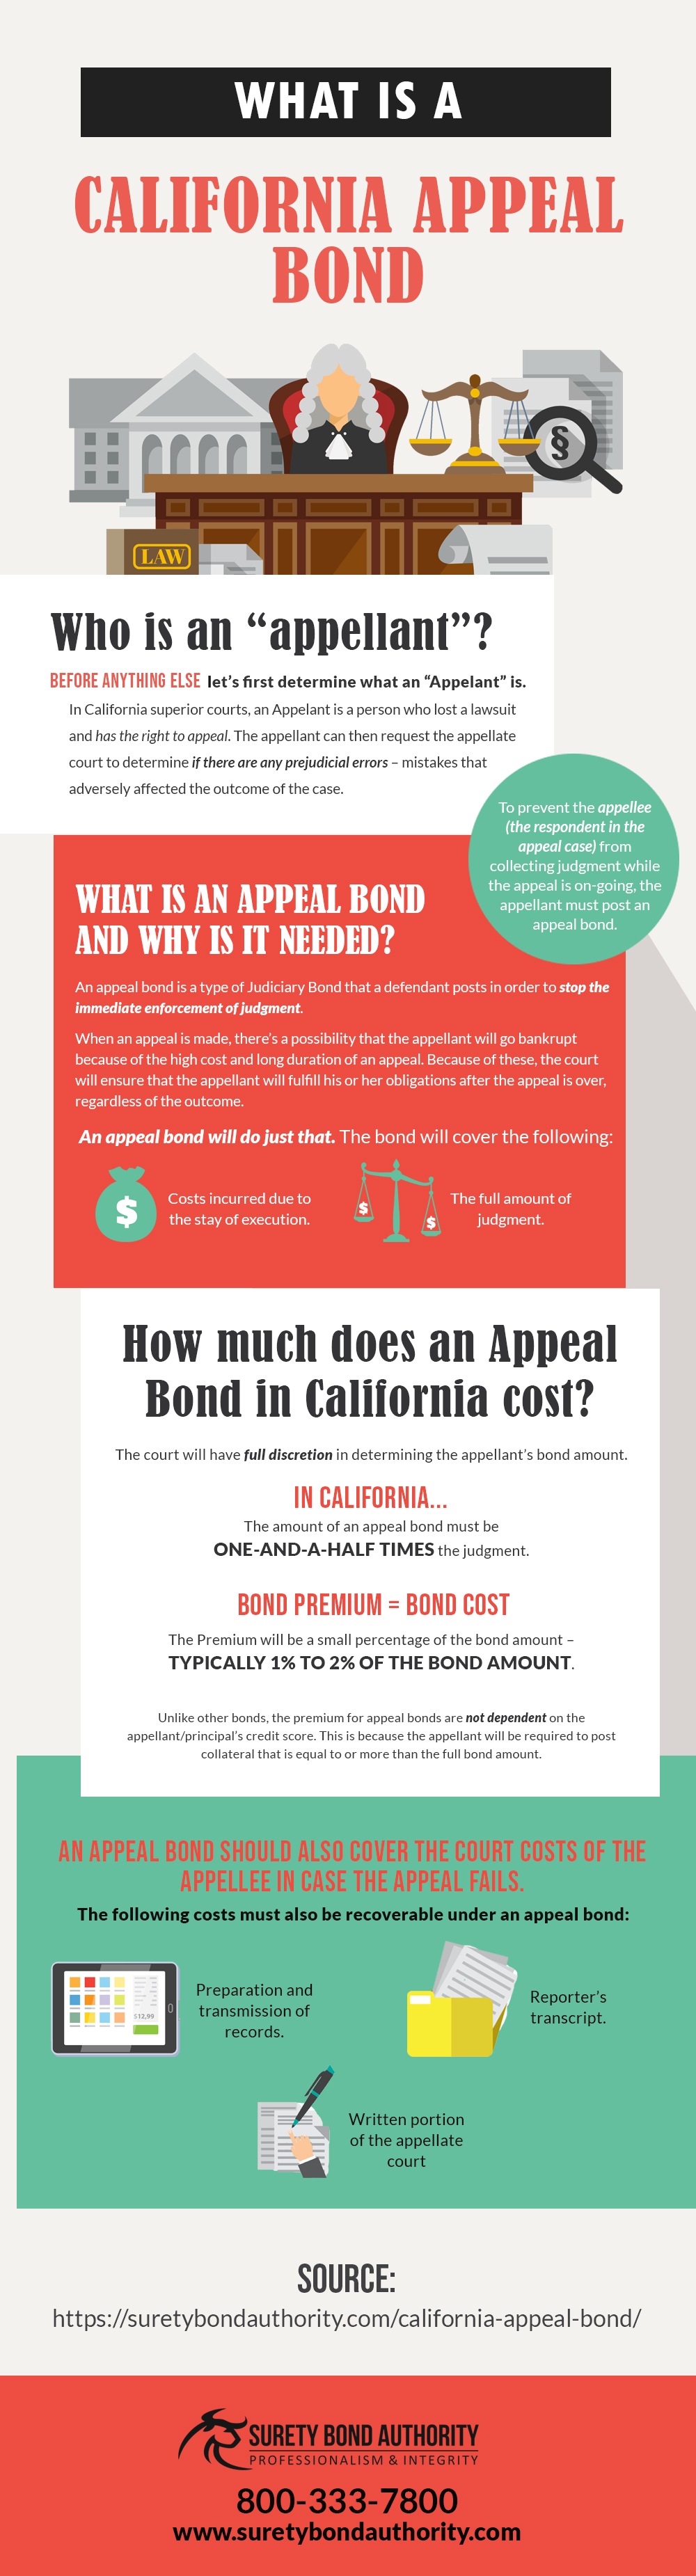 California Appeal Bond Infographic